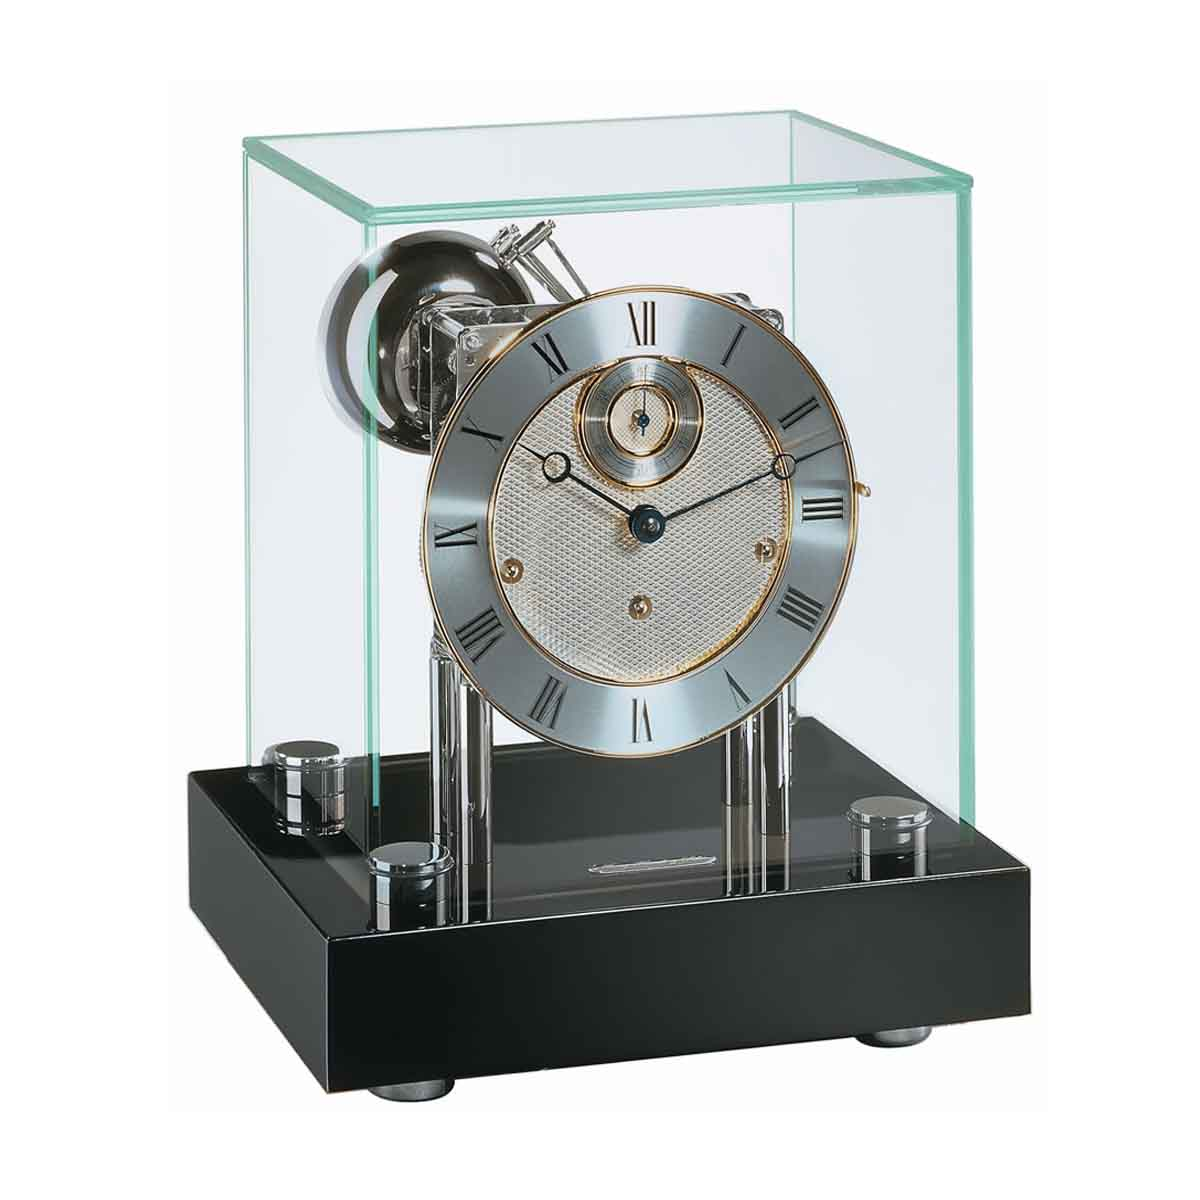 CHIGWELL 22801 740352 Mantel Table Clock